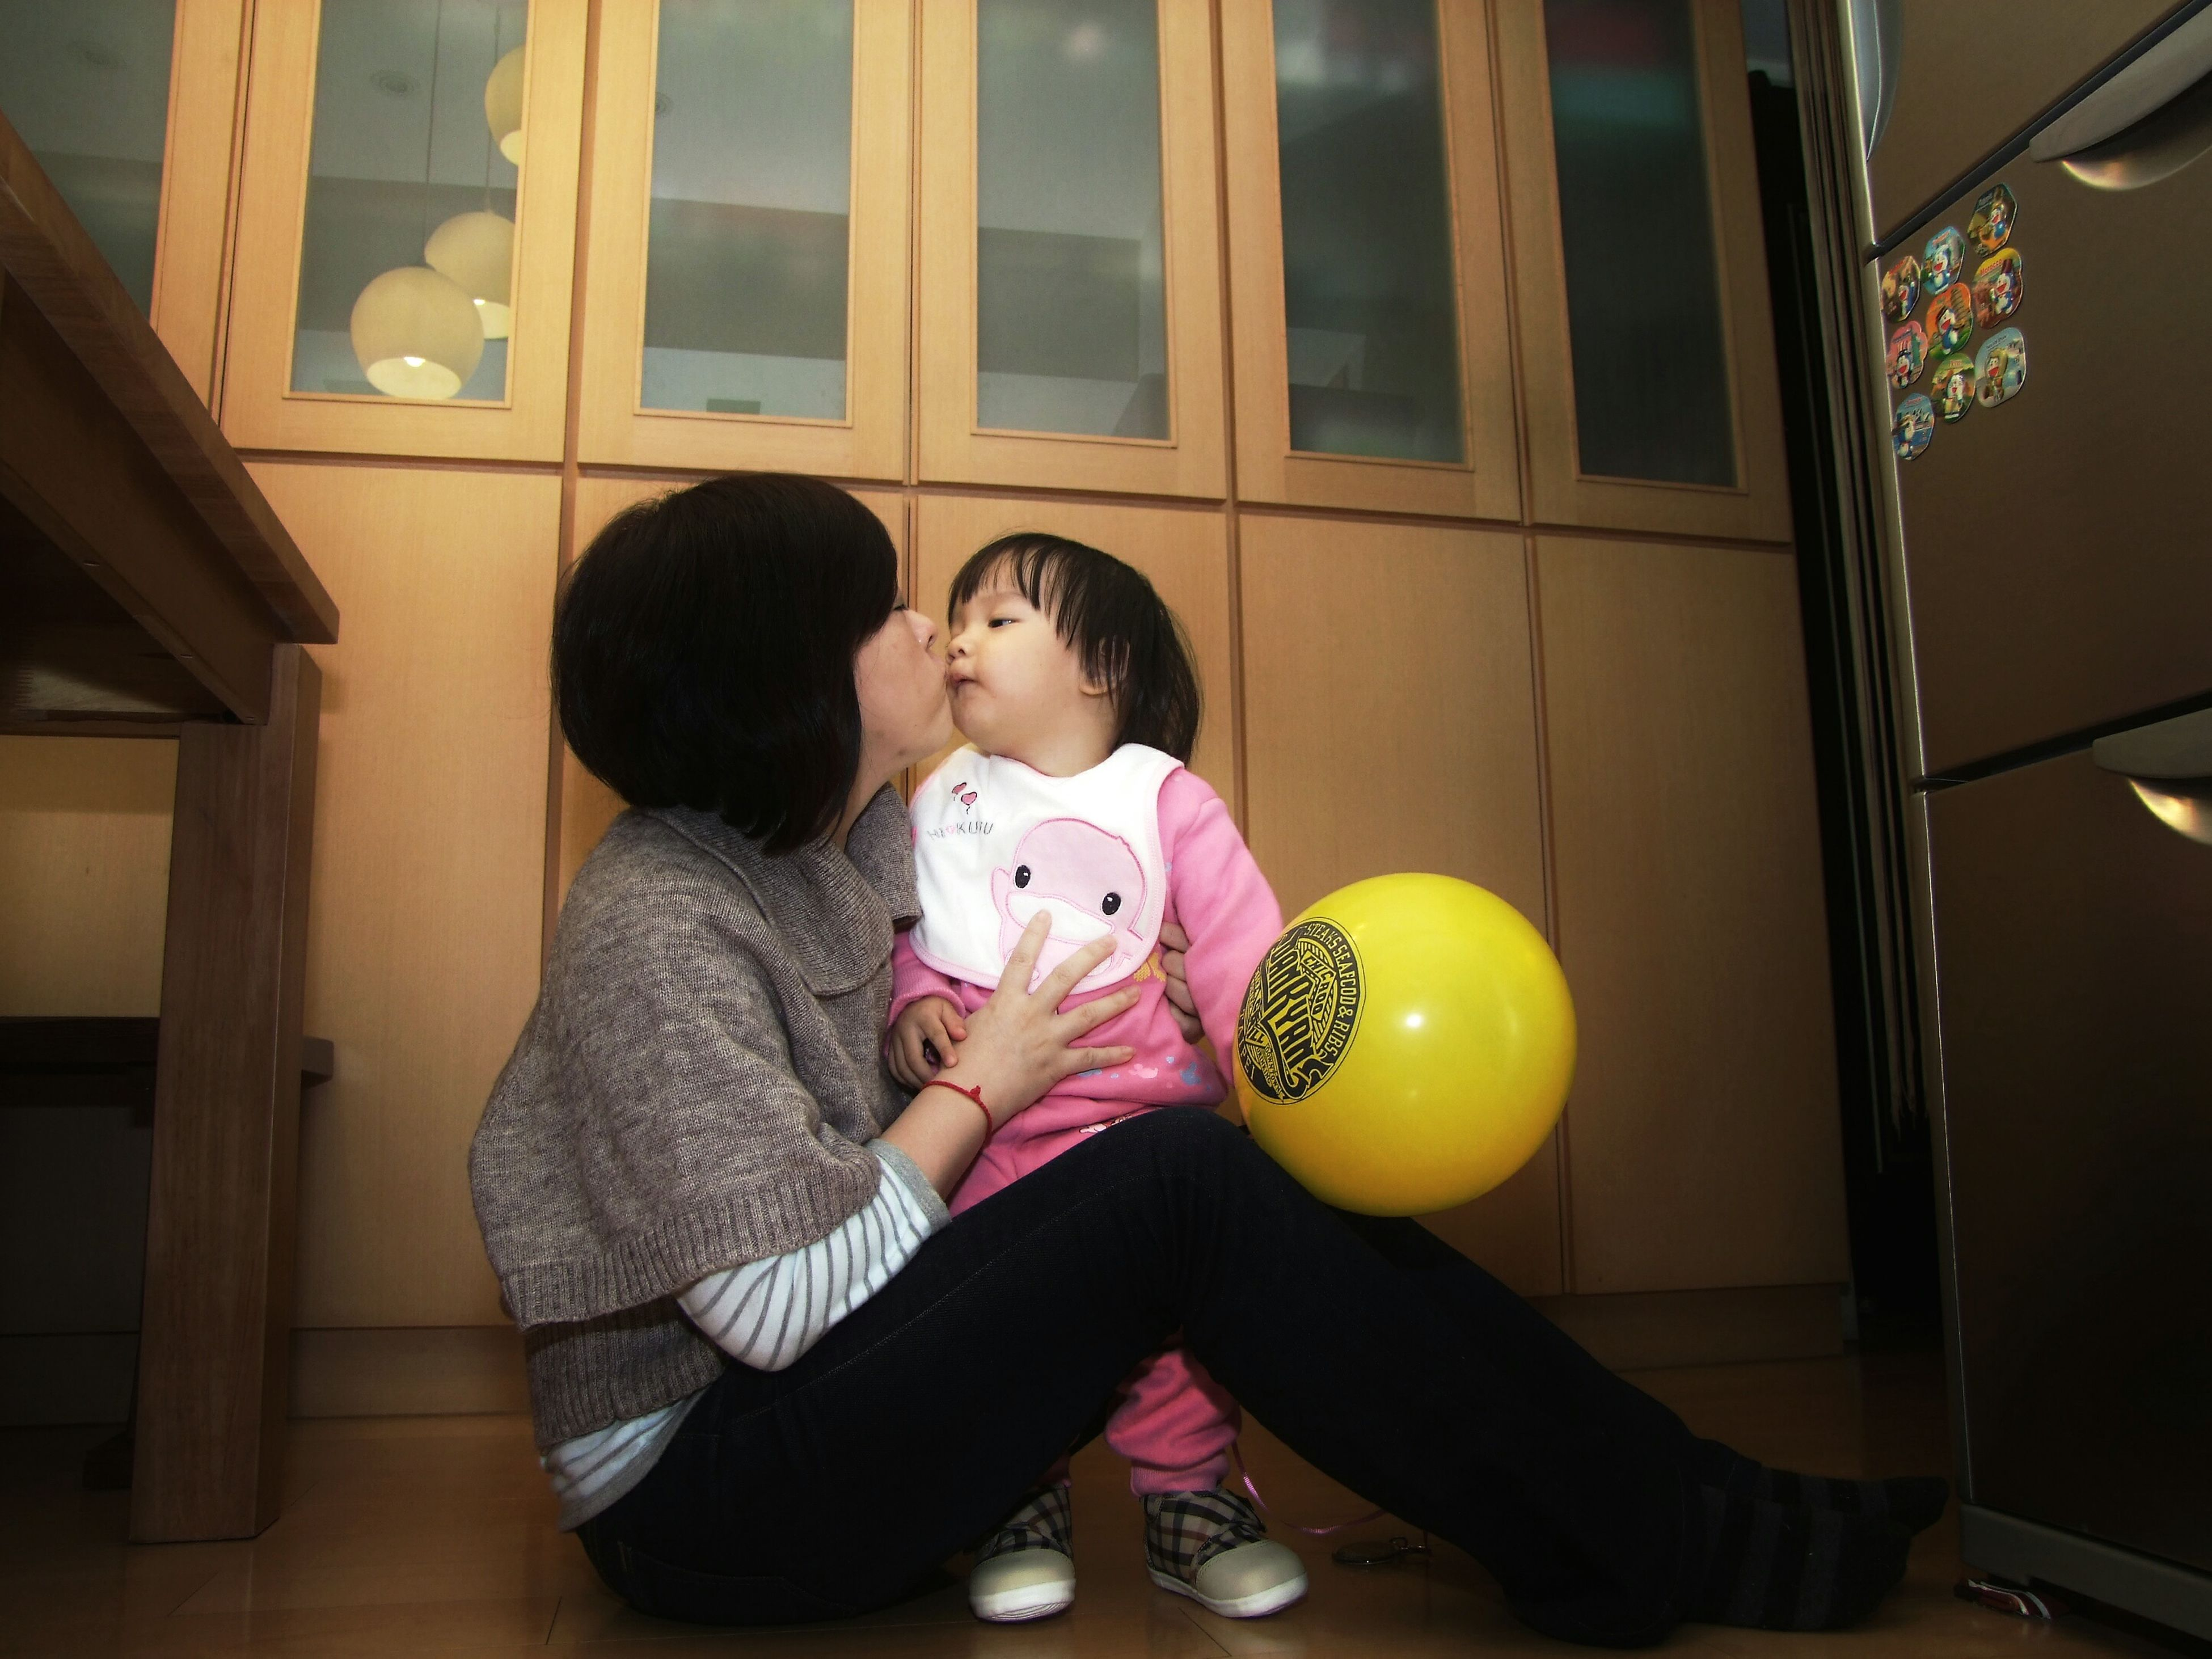 lifestyles, childhood, casual clothing, elementary age, indoors, boys, leisure activity, person, full length, three quarter length, girls, holding, innocence, togetherness, standing, sitting, cute